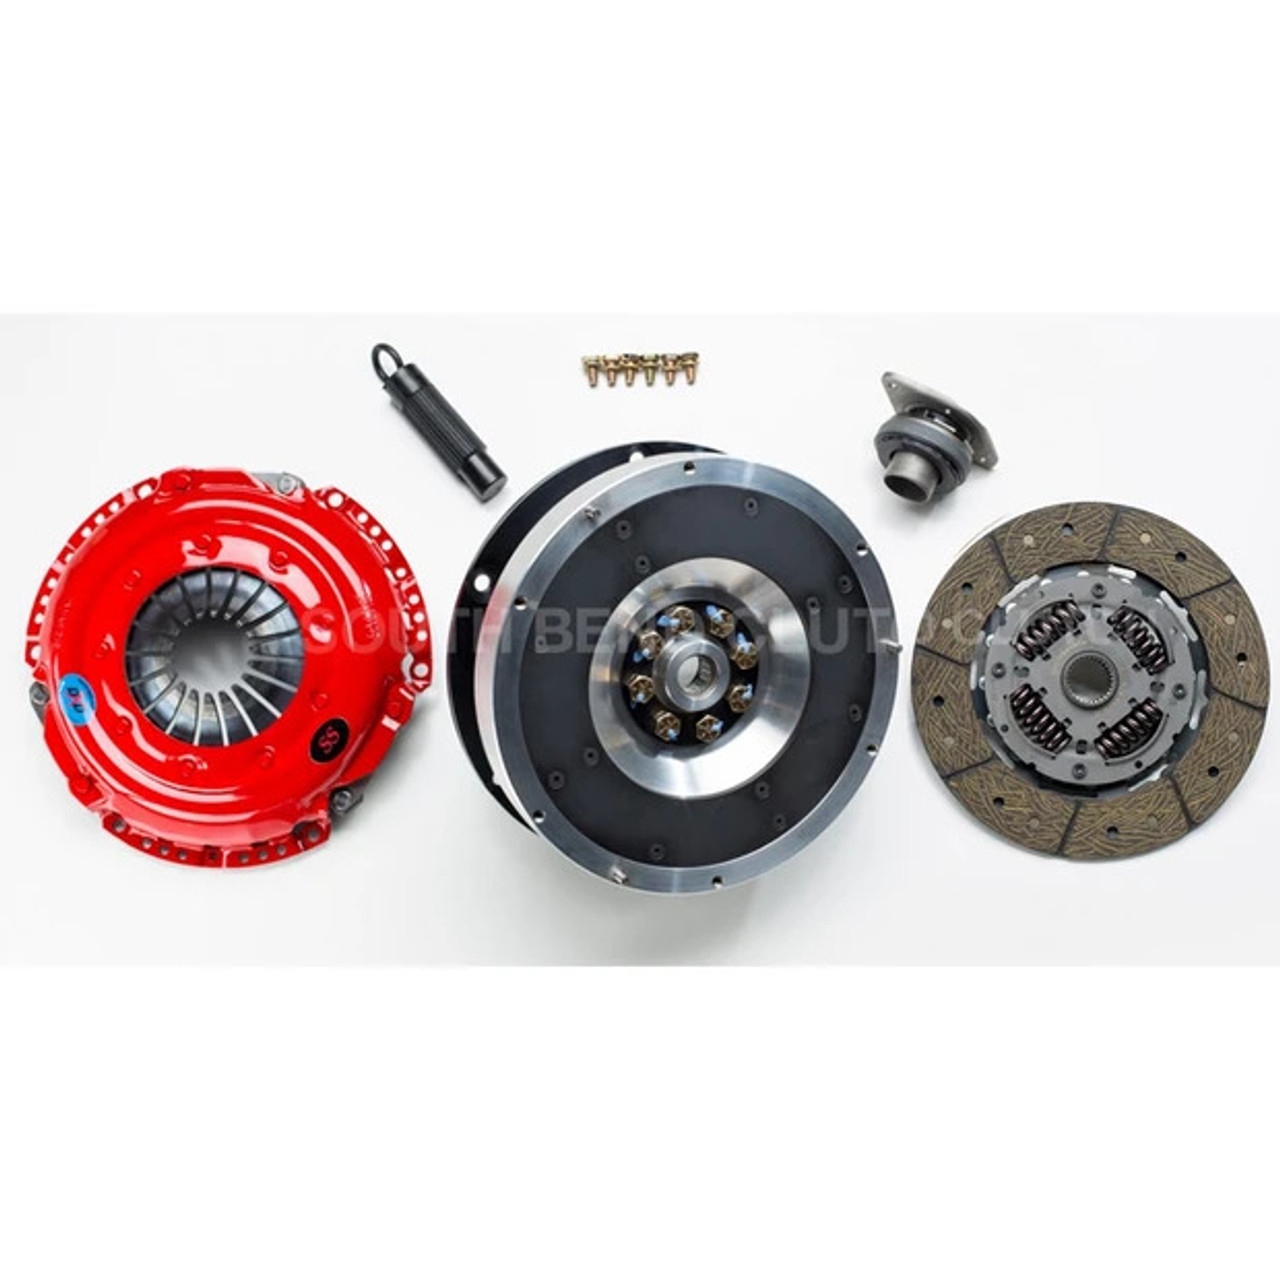 South Bend Stage 3 Endurance Clutch kit includes Single Mass Flywheel (650 Ft-LBS) for Audi B8/8.5 S4/S5 3.0T